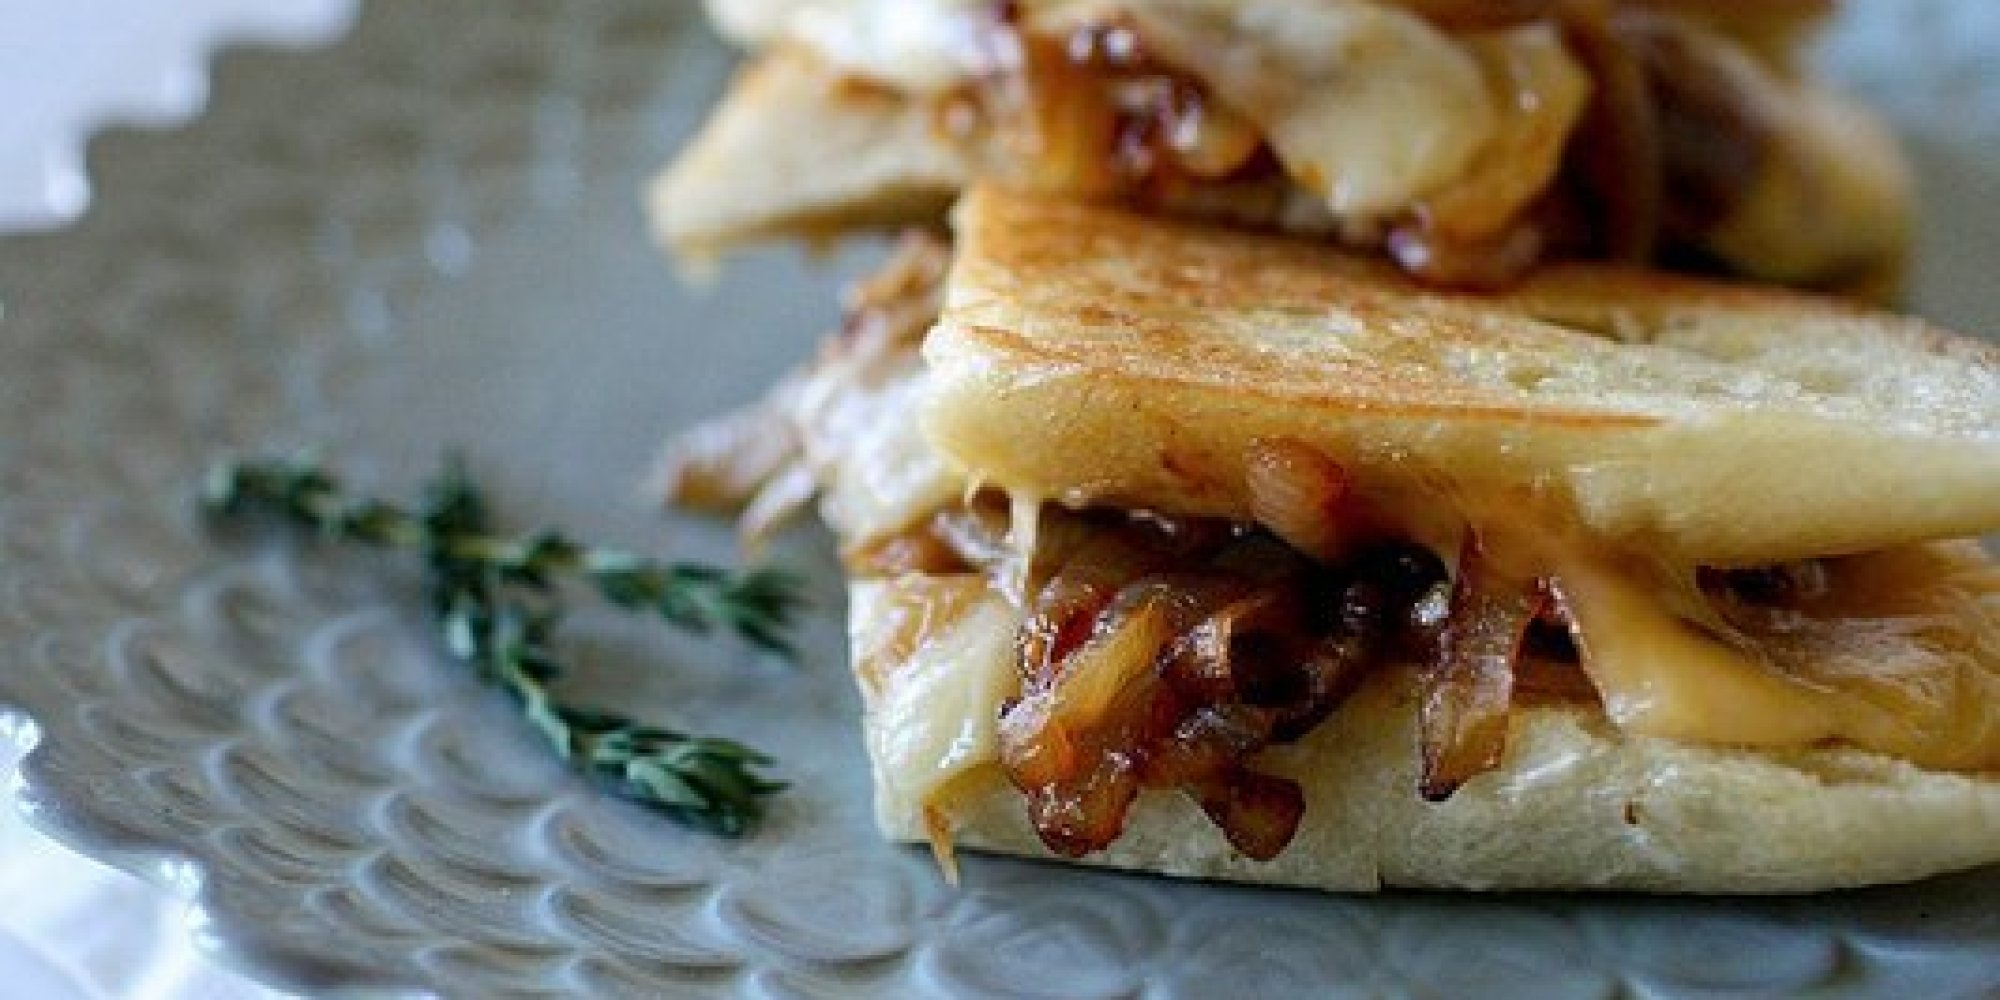 Caramelized Onion Recipes That Take Food To The Next Level ...